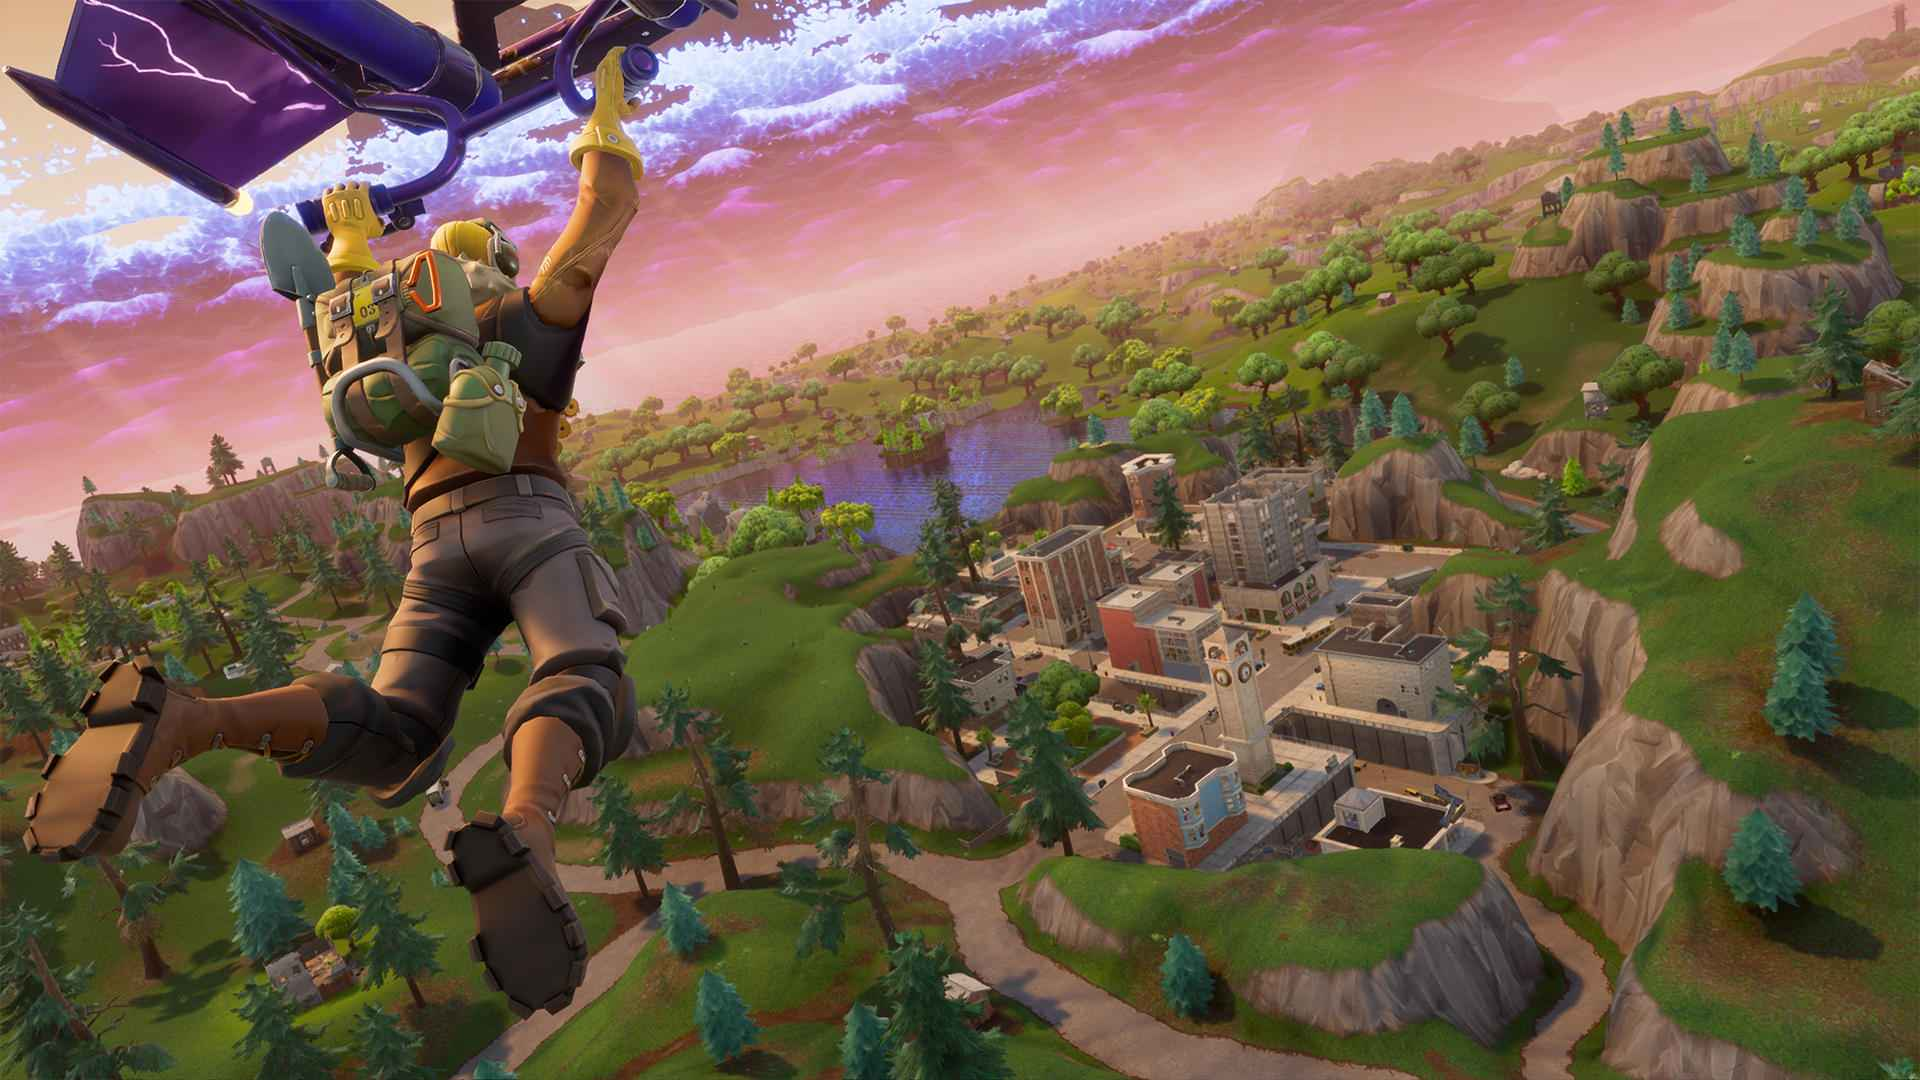 We collected the 20 best advanced Fortnite Battle Royale Strategies from our community Read on to learn how to survive and win Season 4